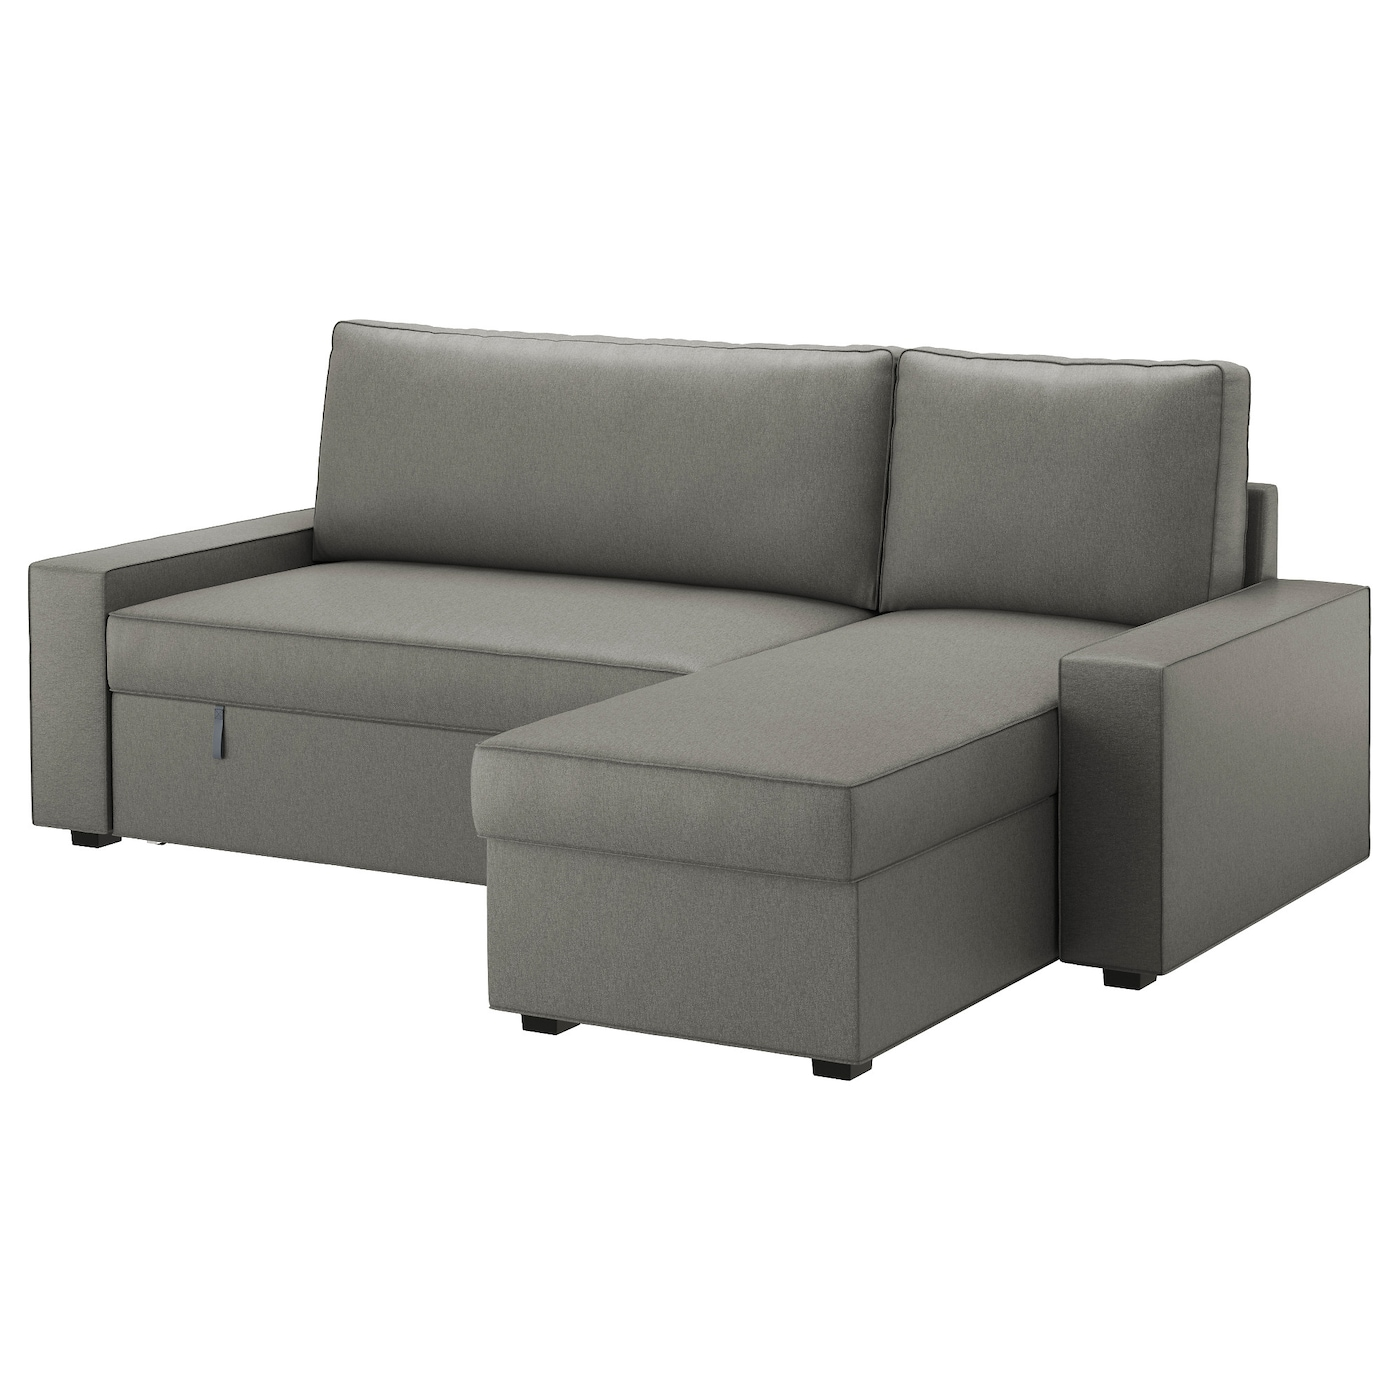 Sofa beds futons ikea for Chaise longue sofa cama